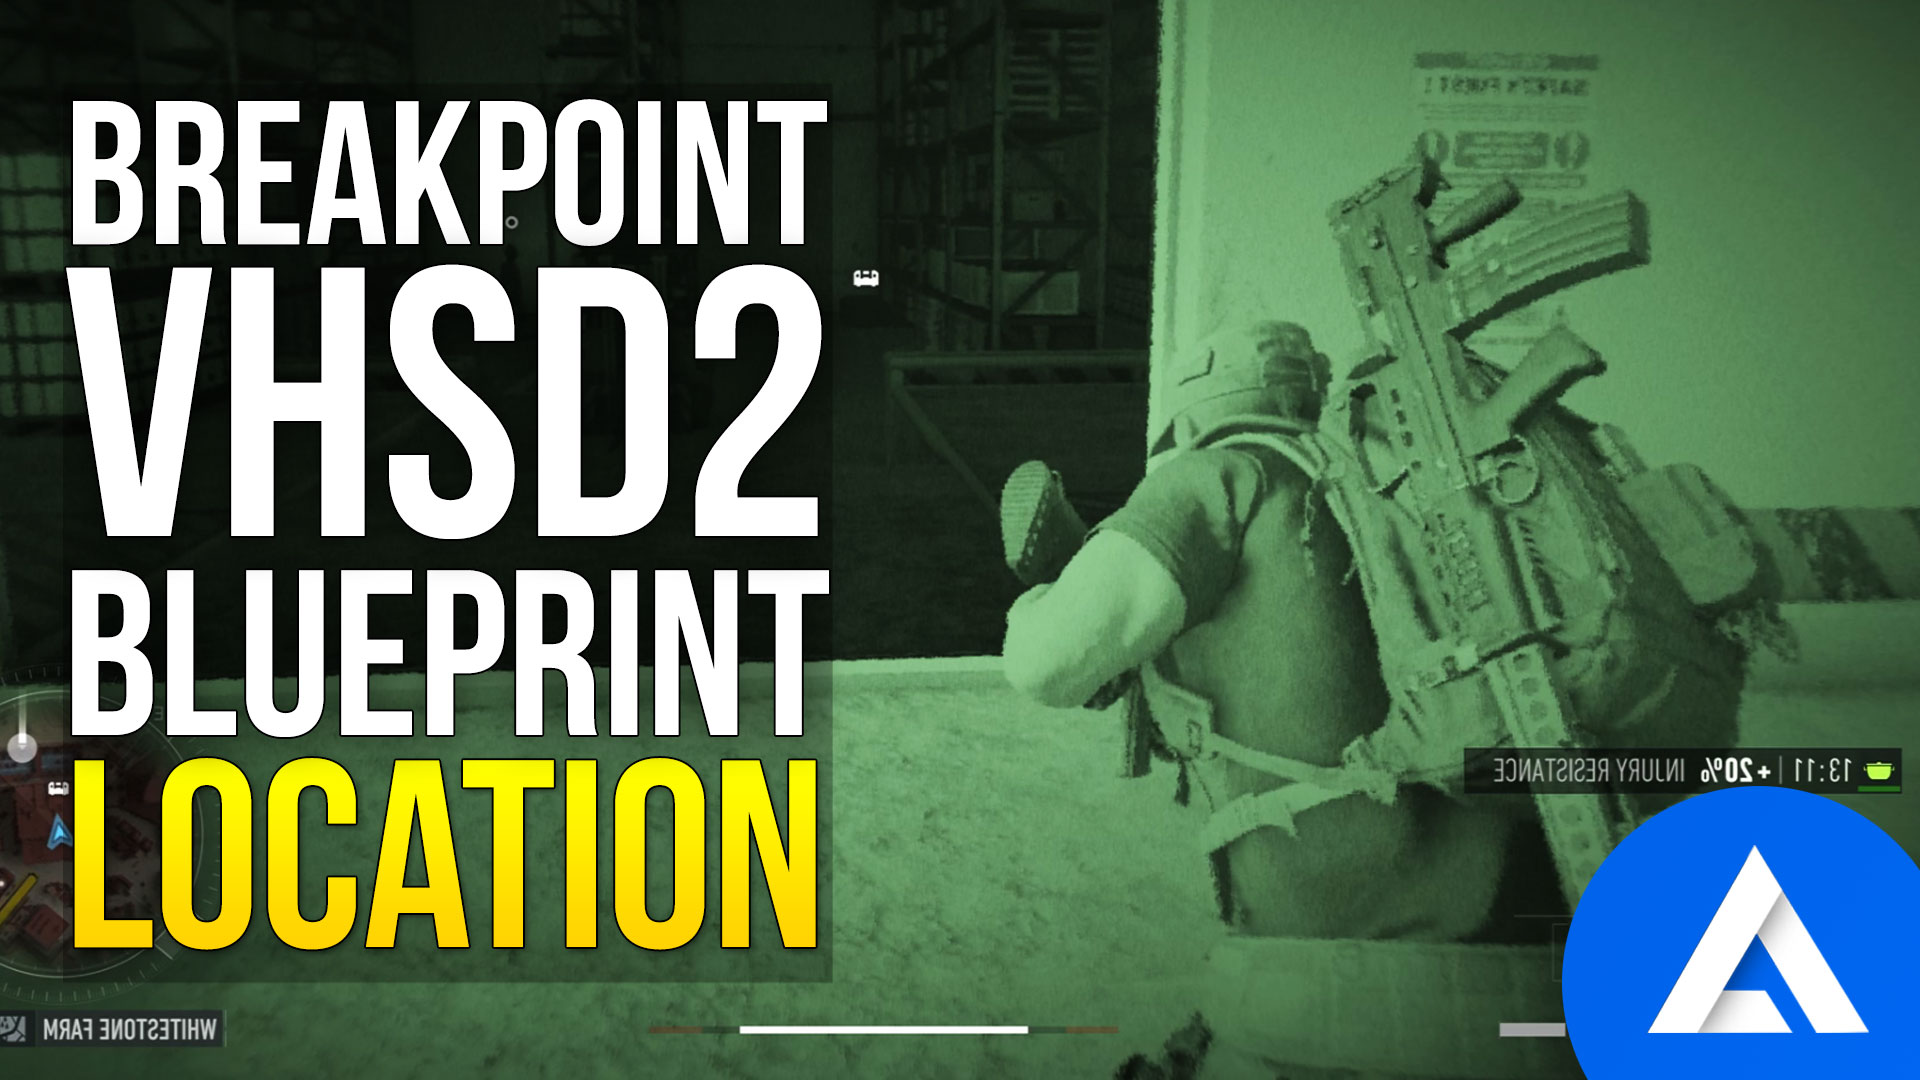 Ghost Recon Breakpoint VHSD2 Blueprint Location